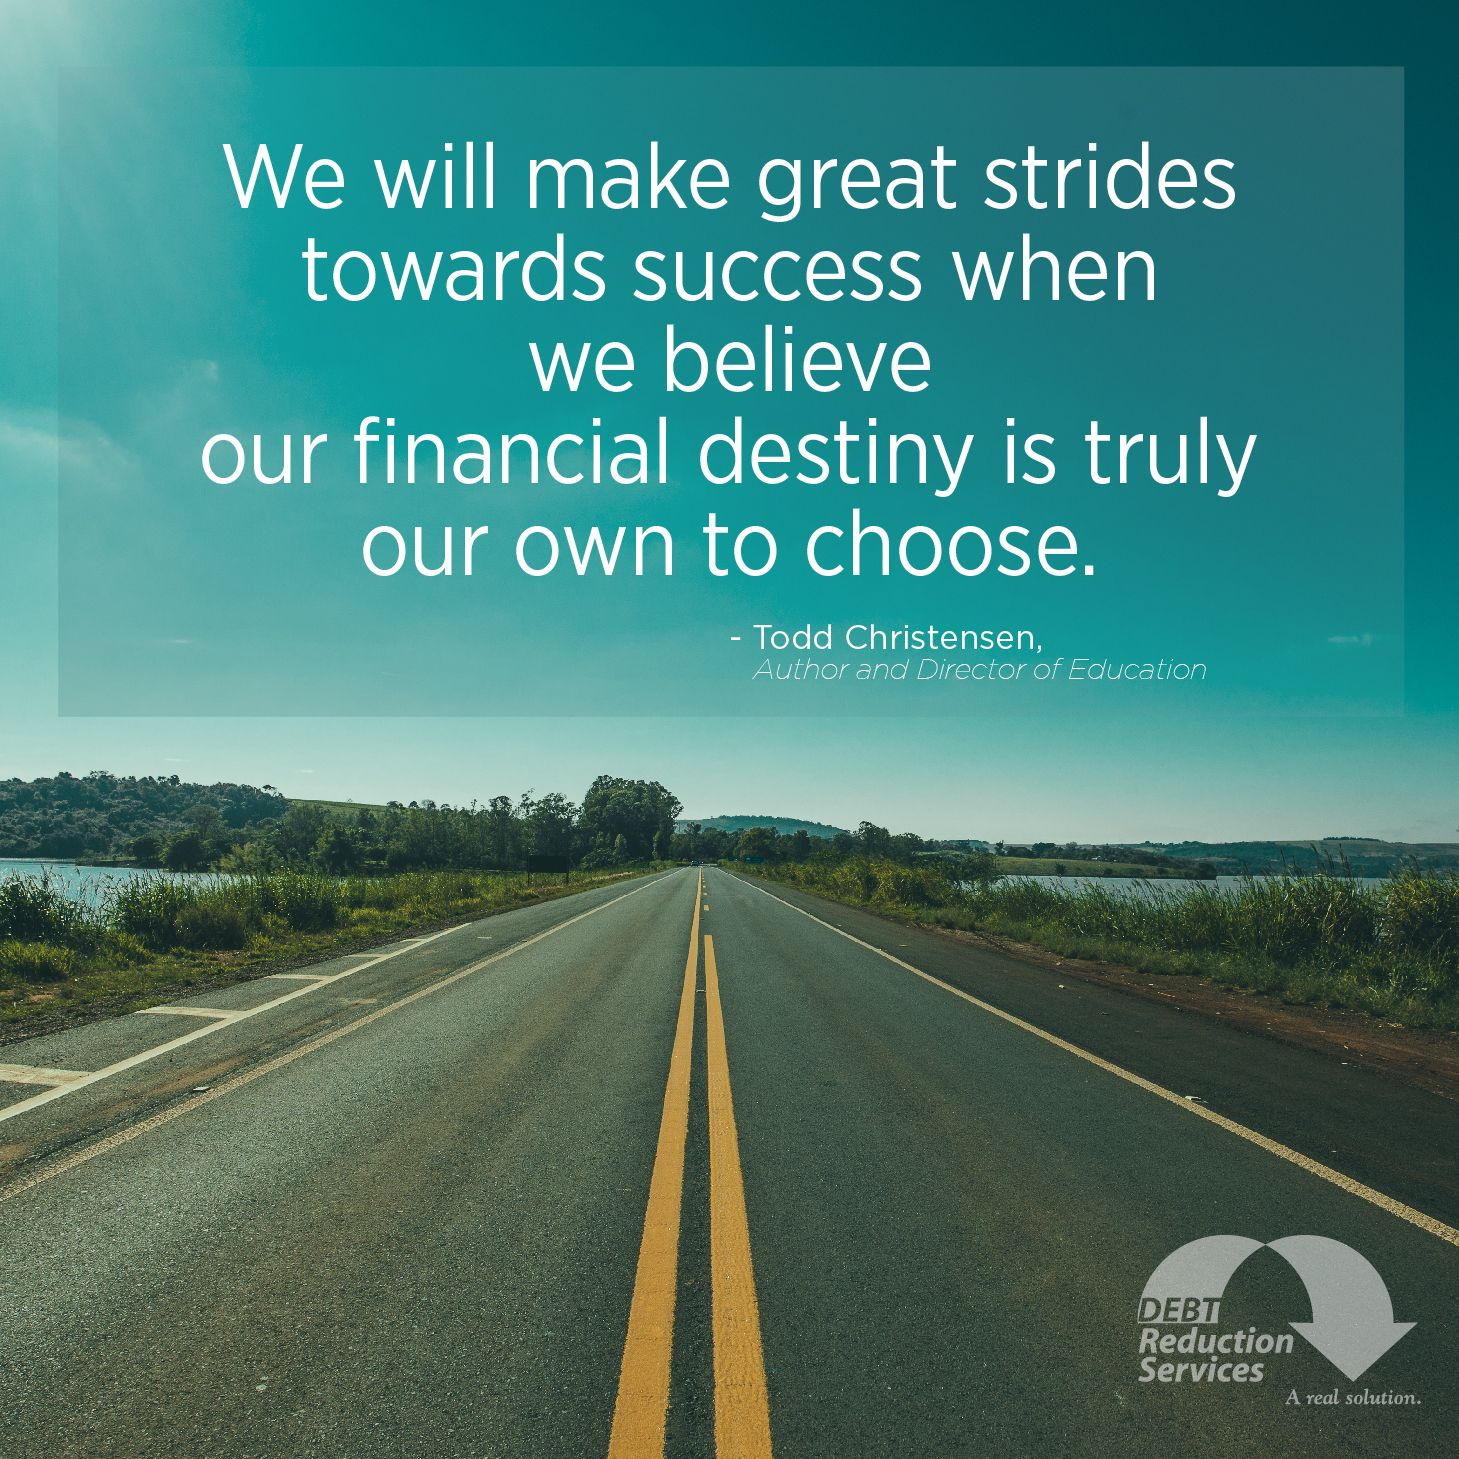 Believe you have the power to choose your financial